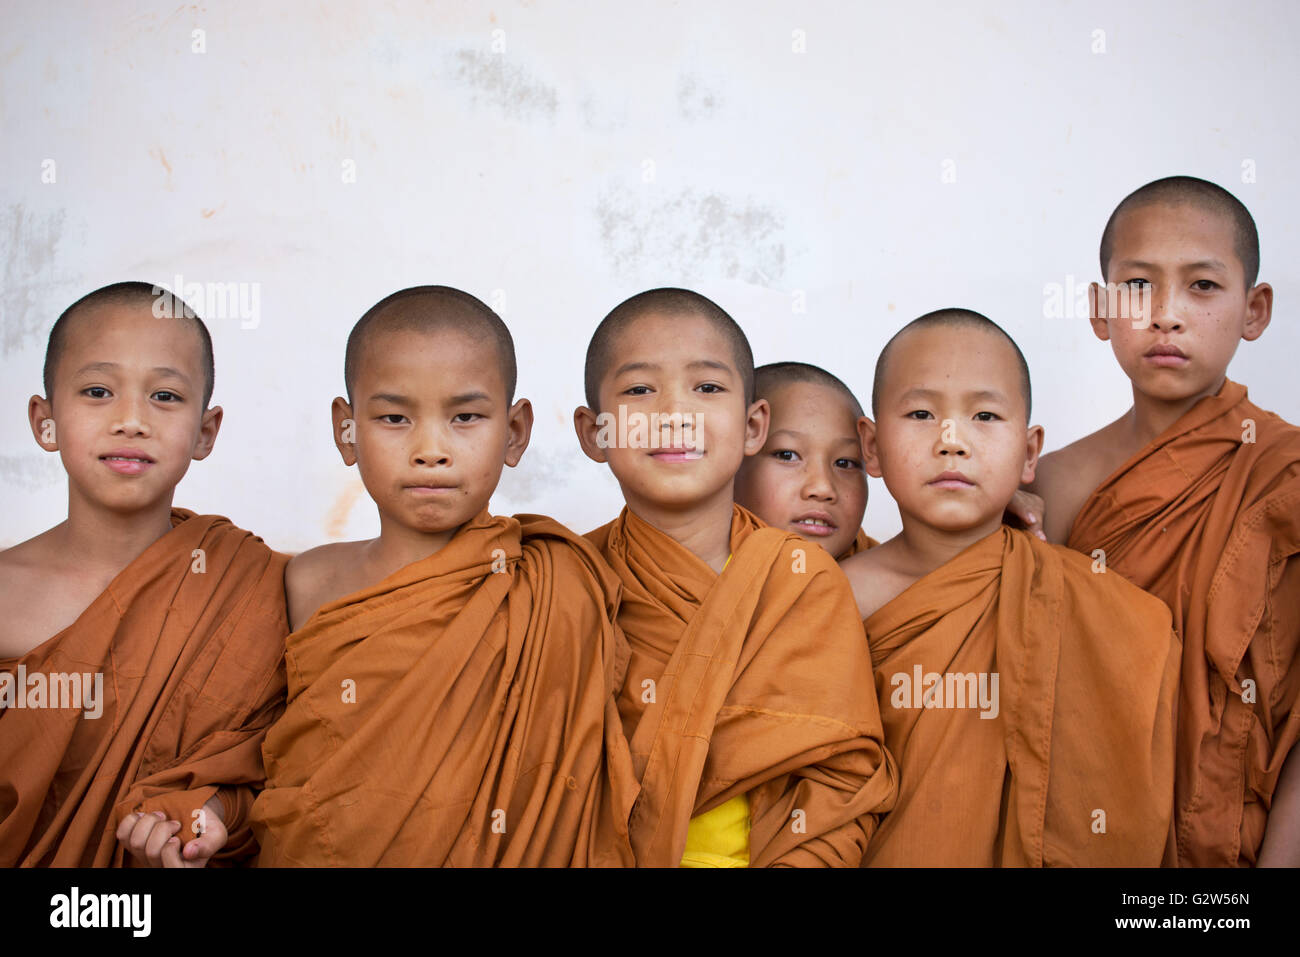 Young novice monks with saffron robes, Shan State, Myanmar - Stock Image